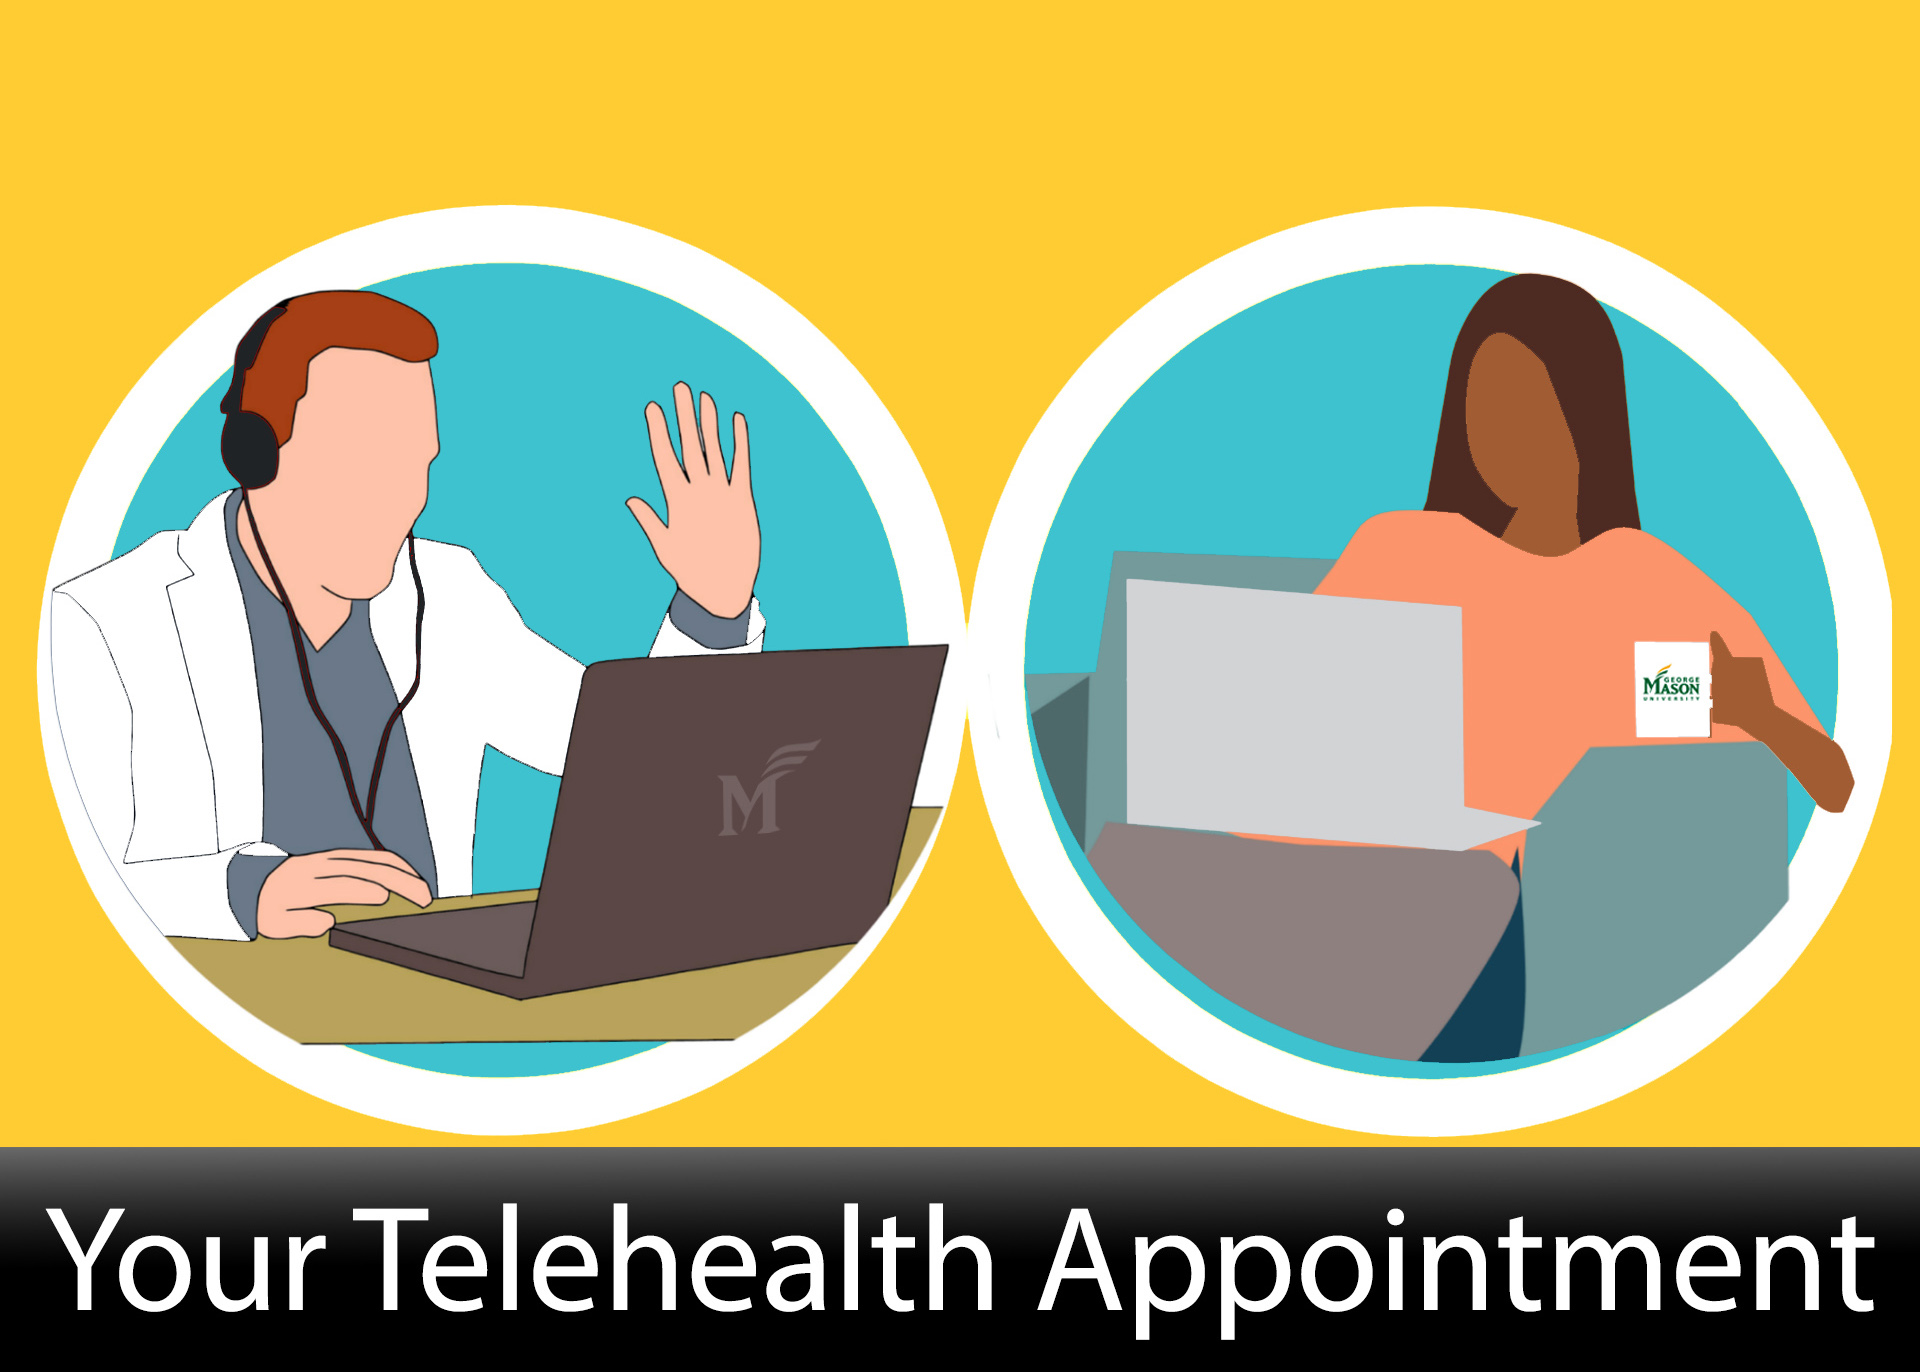 Your Telehealth Appointment